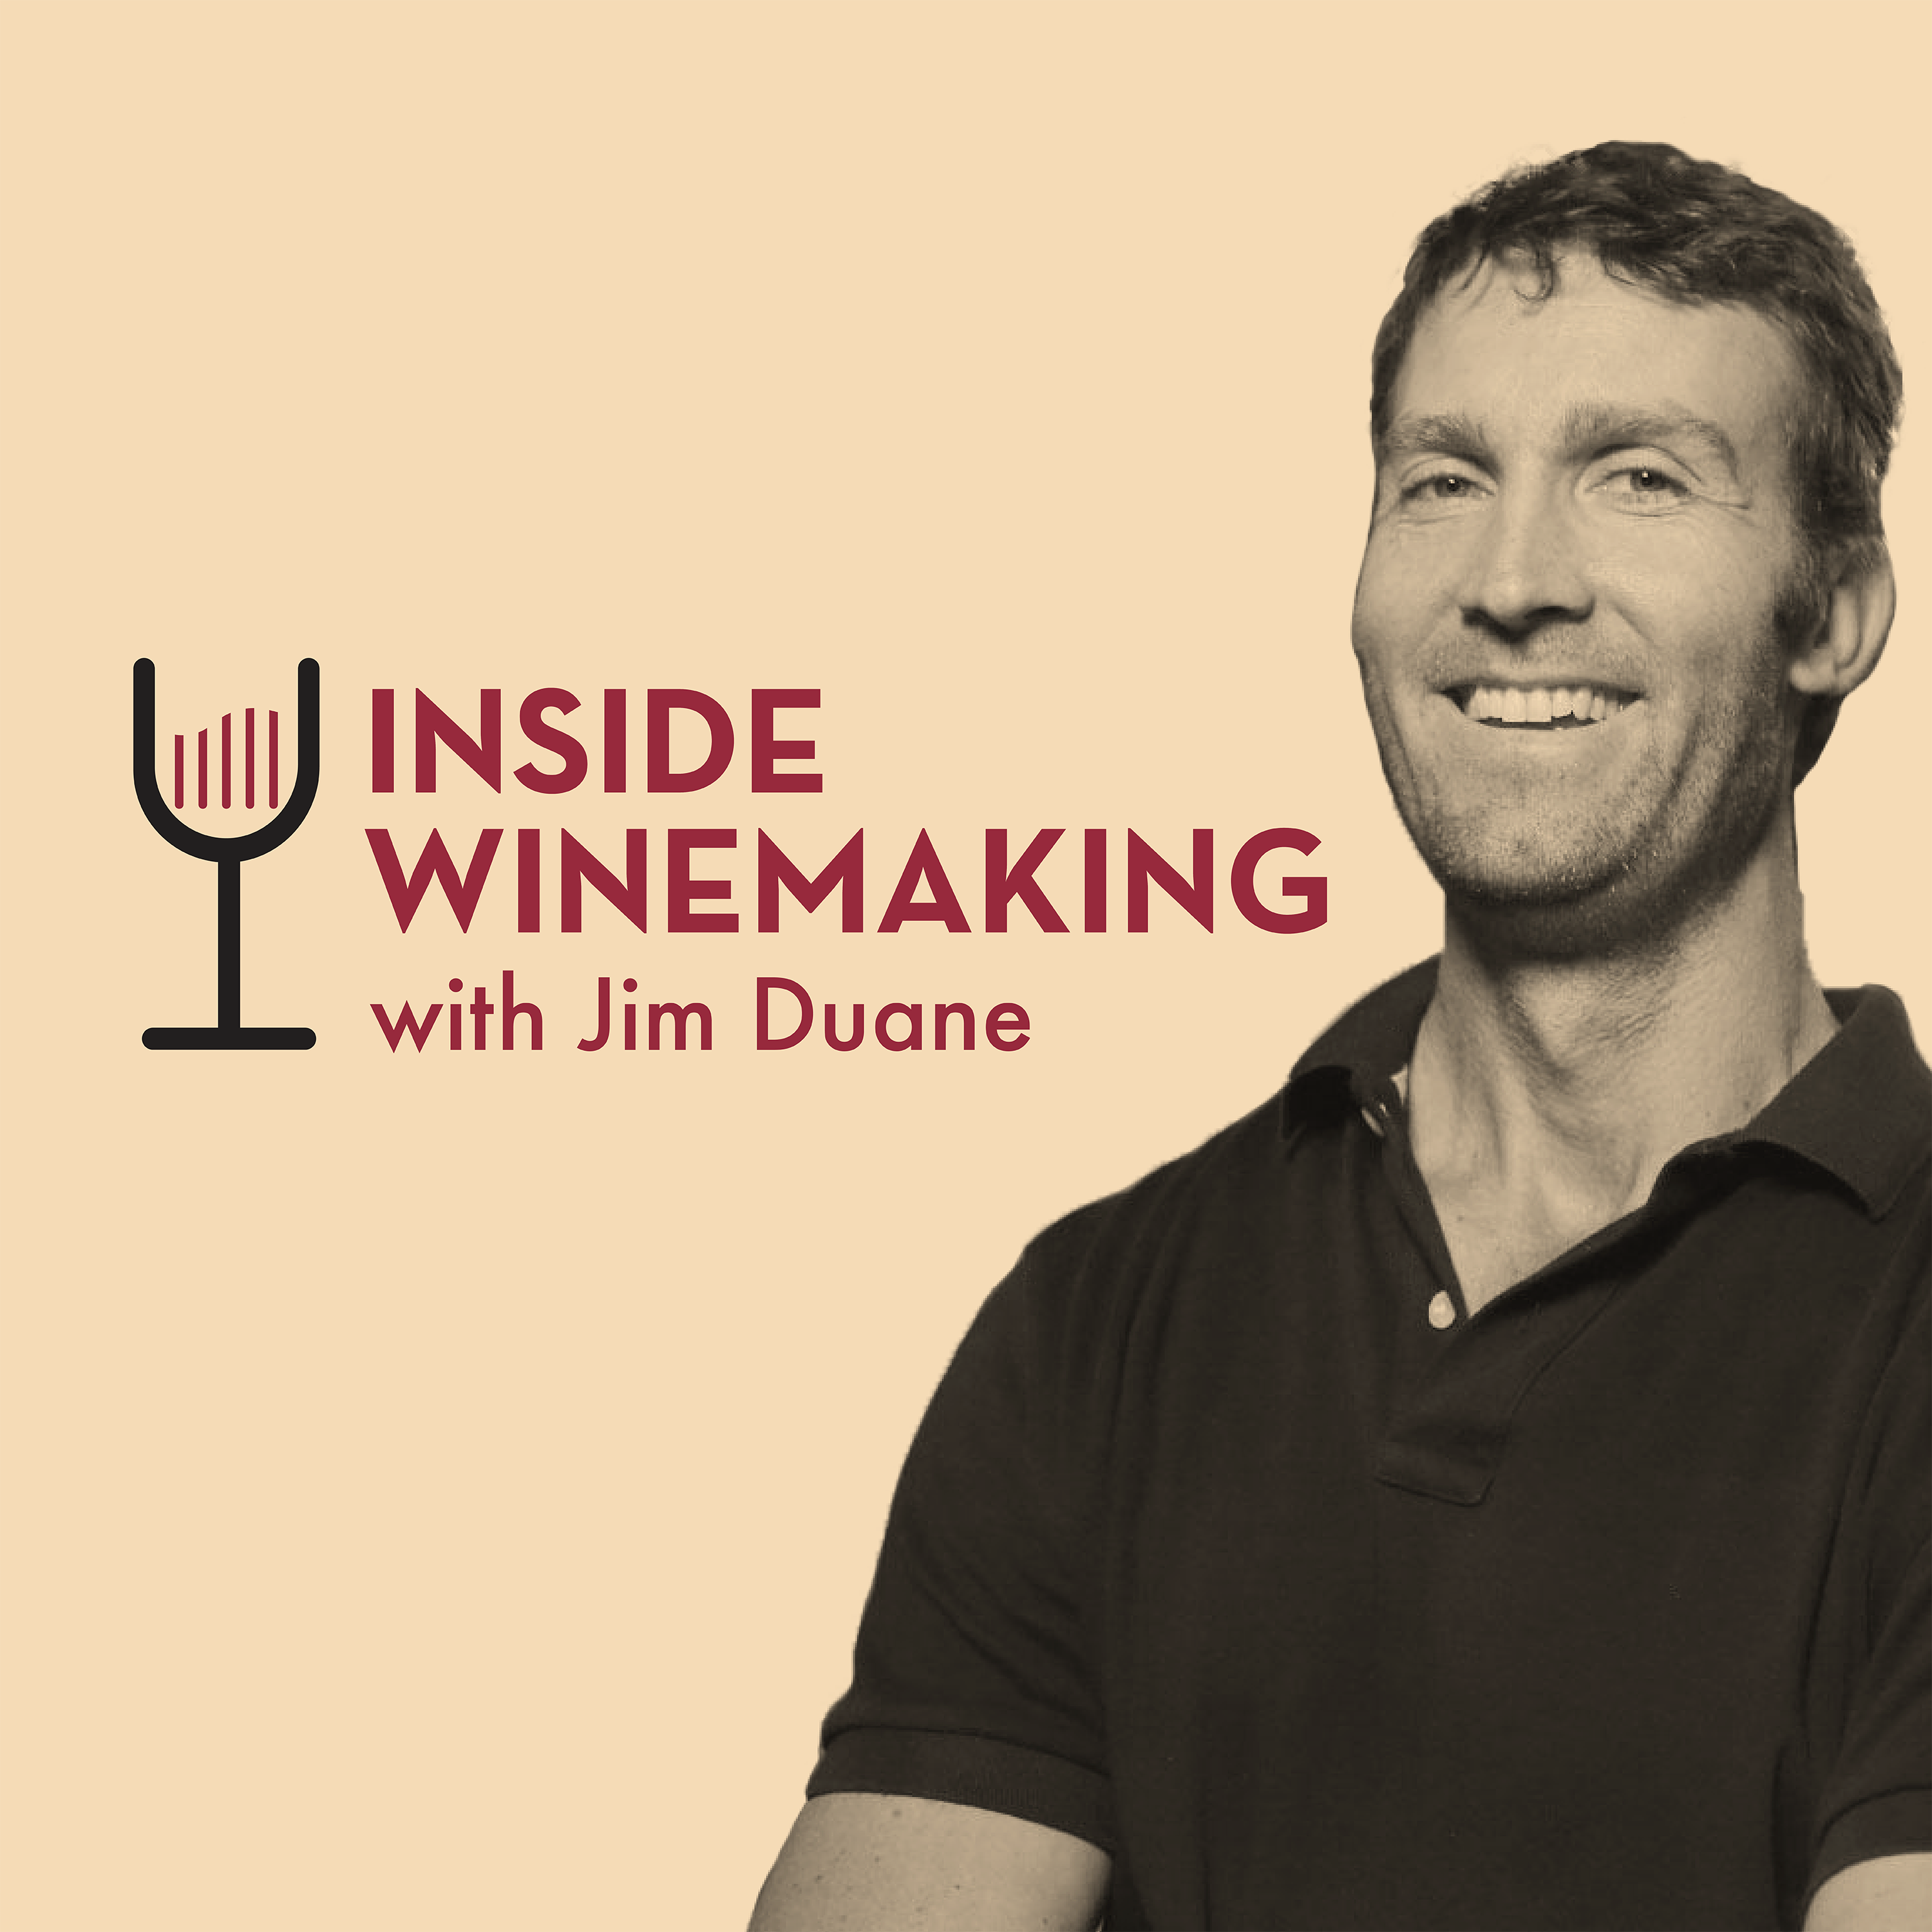 Cari Brooke Roberts - Head of Acquisition @ Naked Wines